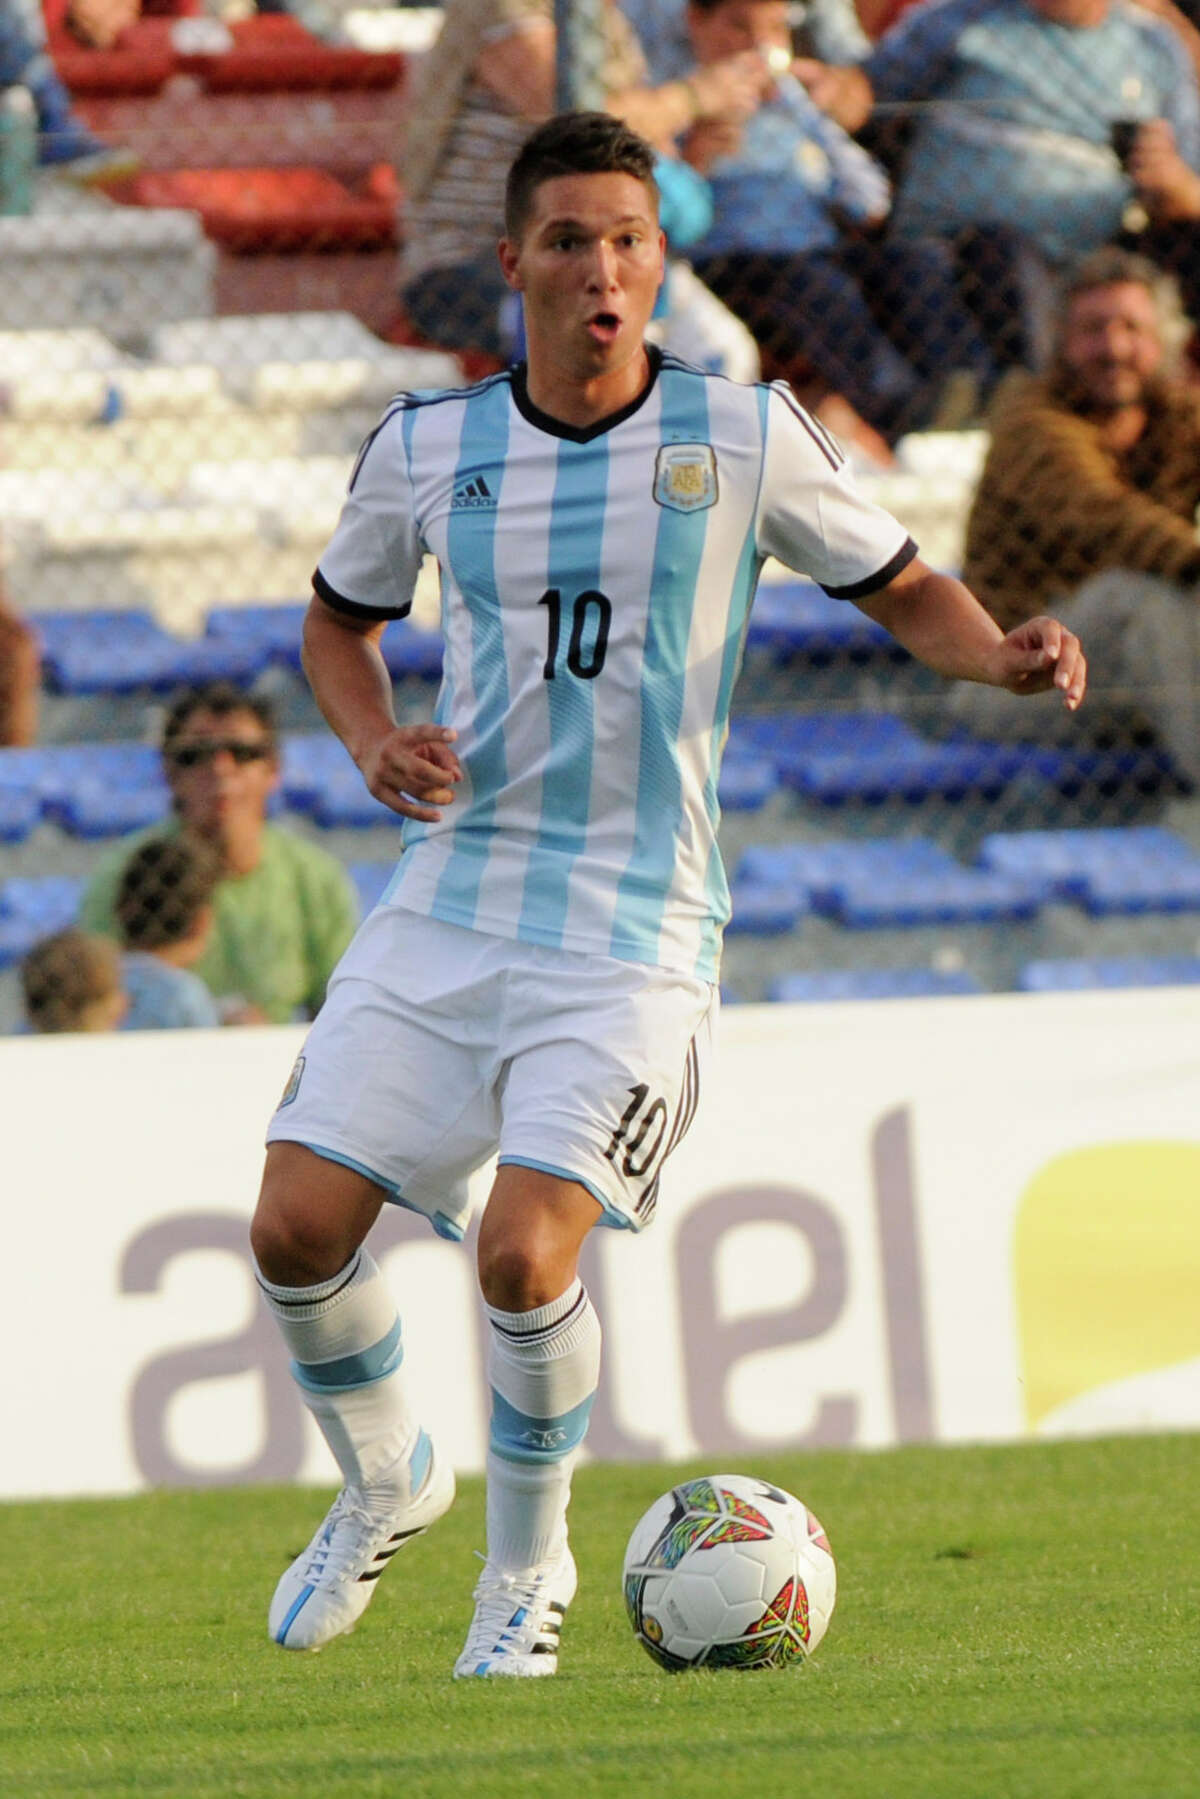 MONTEVIDEO, URUGUAY - JANUARY 29: Tomas Martinez of Argentina drives the ball during a match between Argentina and Colombia as part of South American U-20 at Parque Central Stadium on January 29, 2015 in Montevideo, Uruguay. (Photo by Sandro Pereyra/LatinContent/Getty Images)